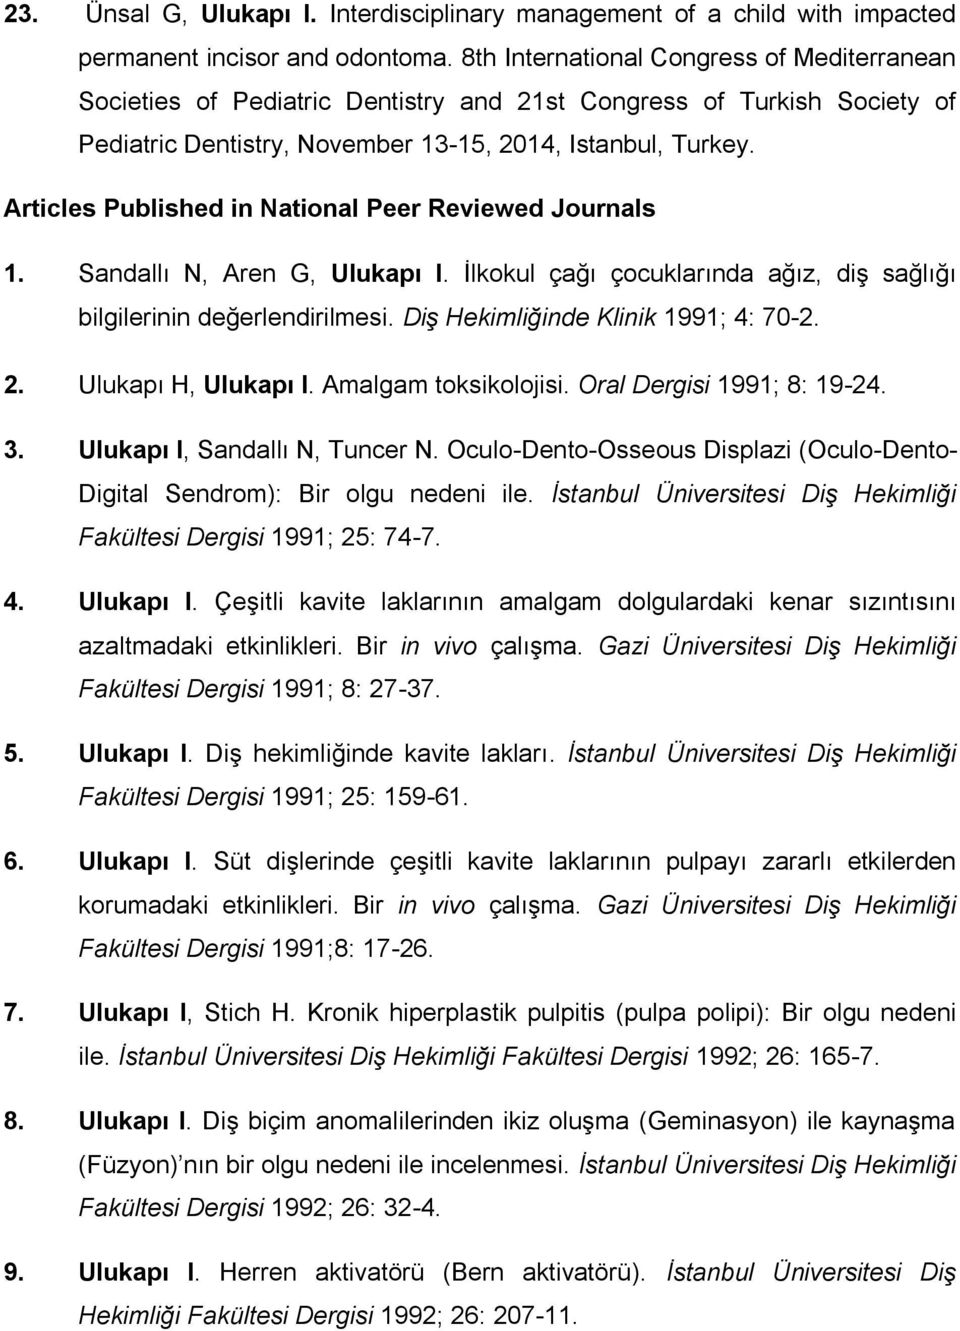 Articles Published in National Peer Reviewed Journals 1. Sandallı N, Aren G, Ulukapı I. İlkokul çağı çocuklarında ağız, diş sağlığı bilgilerinin değerlendirilmesi.